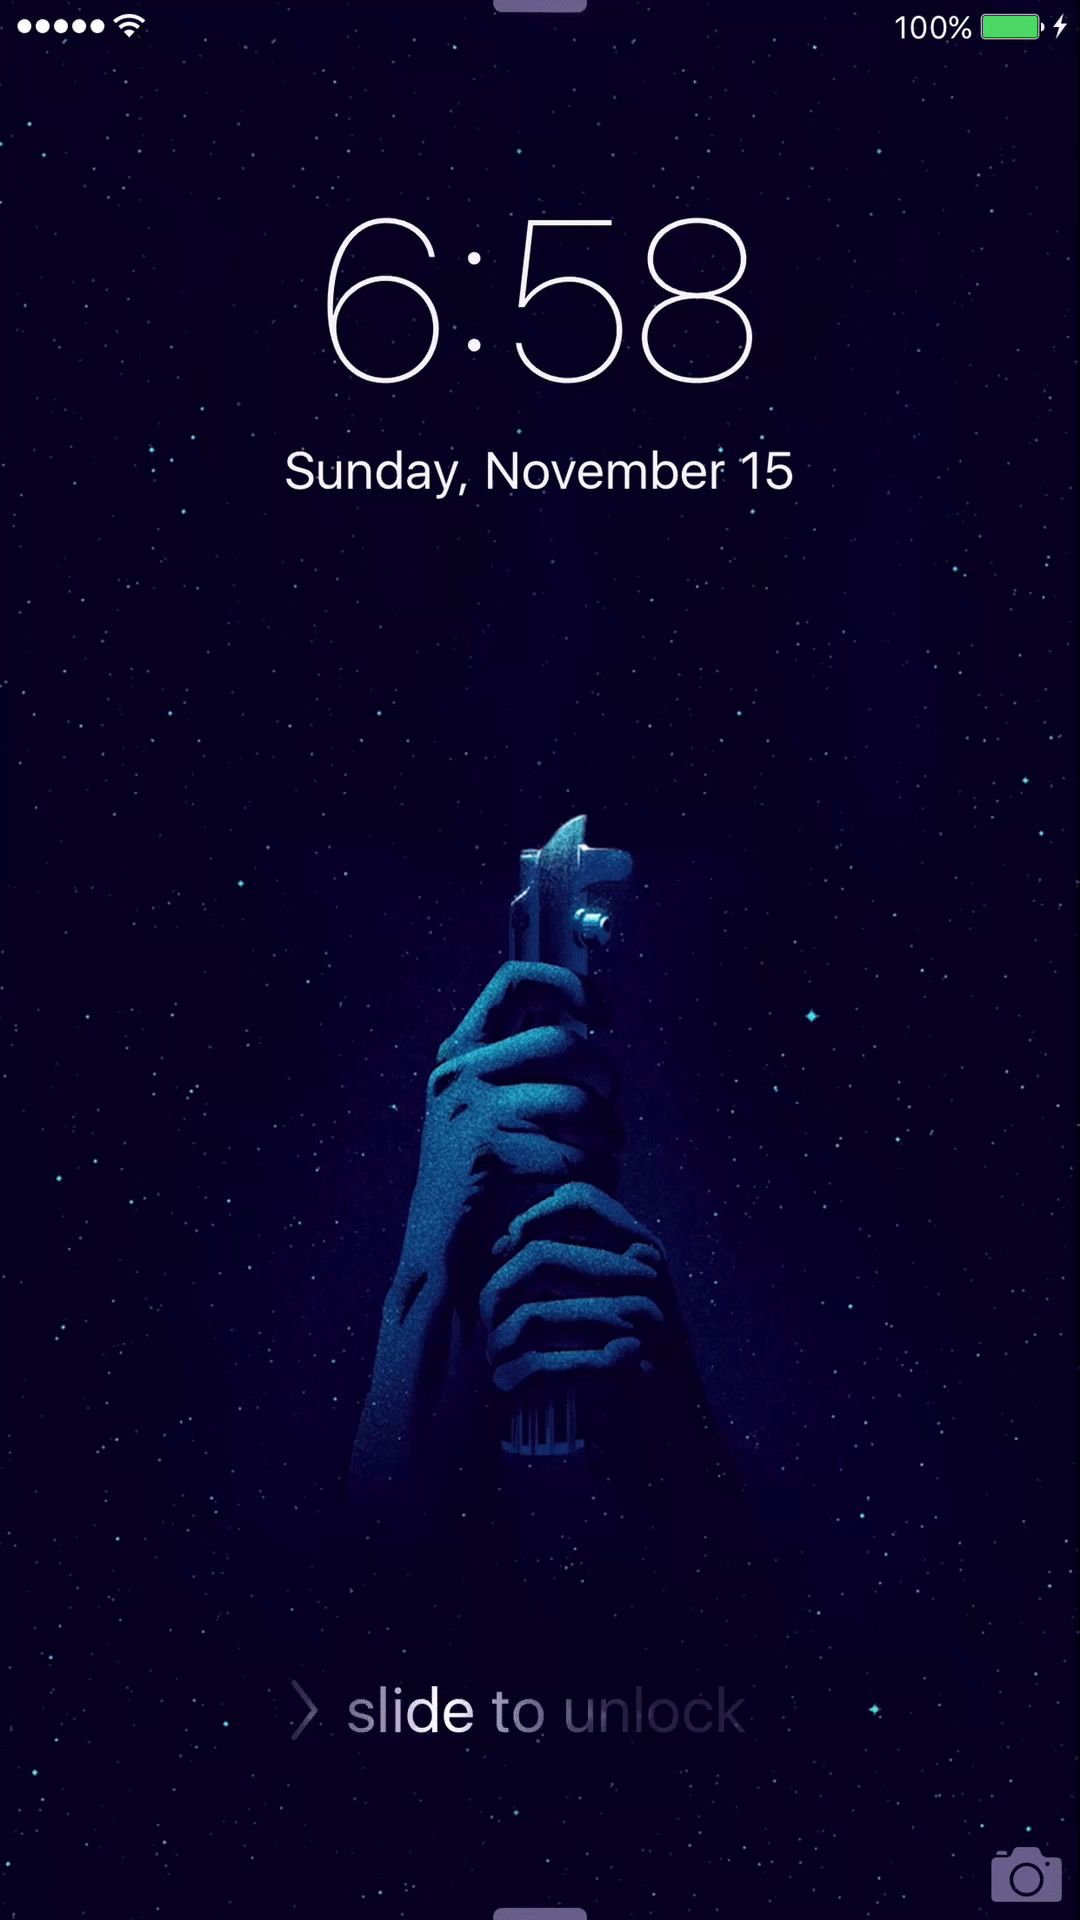 Moving Star Wars Live Wallpaper Iphone